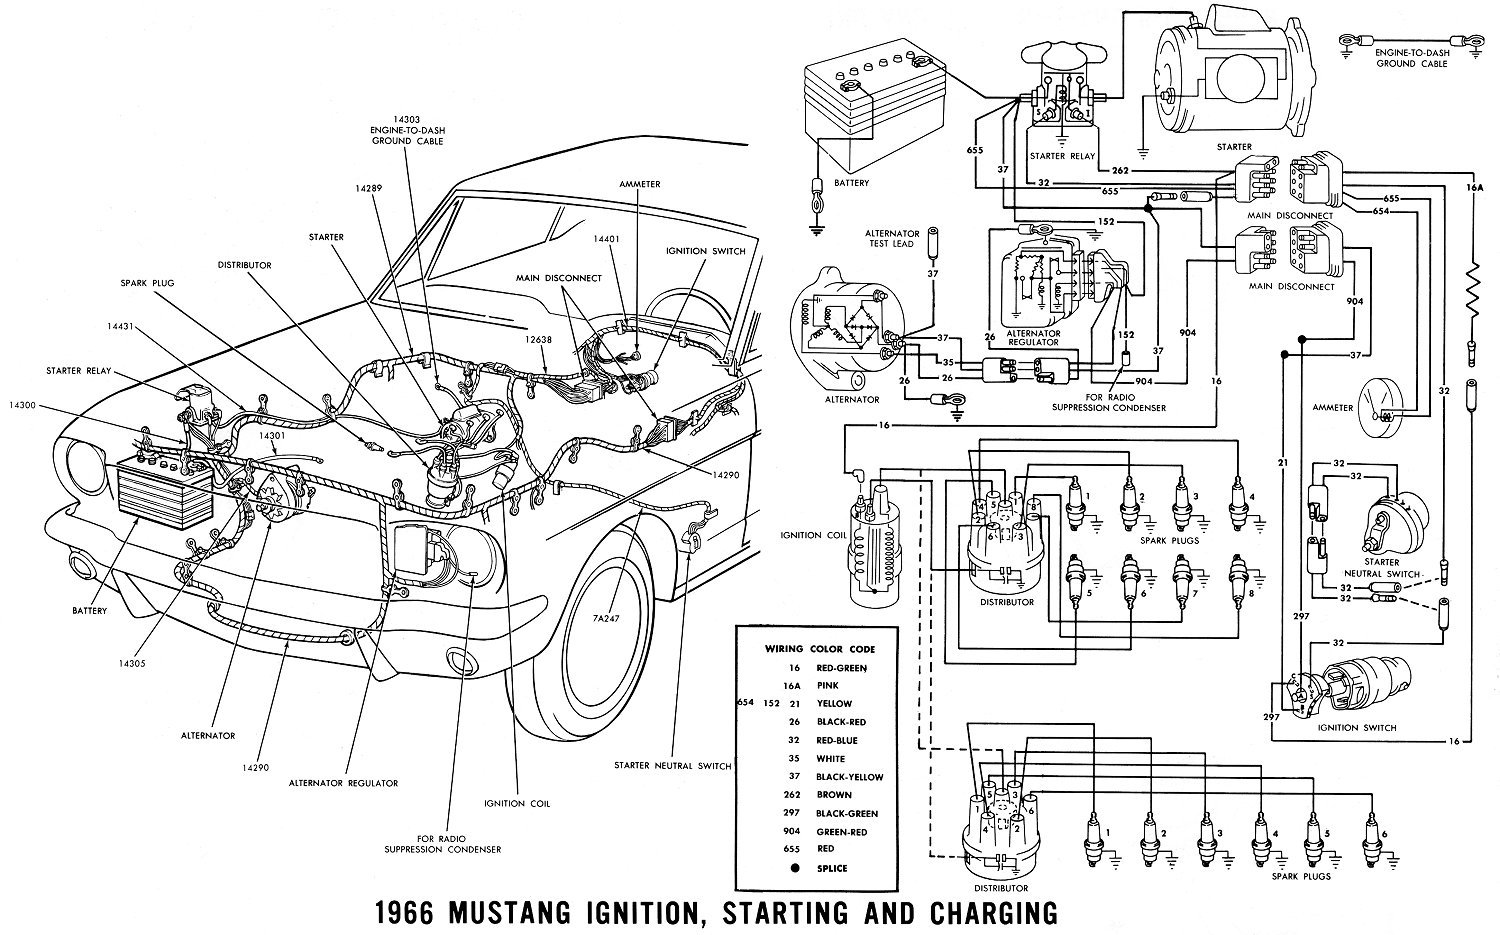 Duramax Engine Diagram in addition 256071928783267162 as well 550564 together with 633038 Electrical Wiring Engine  partment 1968 A further Download 2007 2011 Honda Trx420 Repair. on 70 volt line wiring diagram